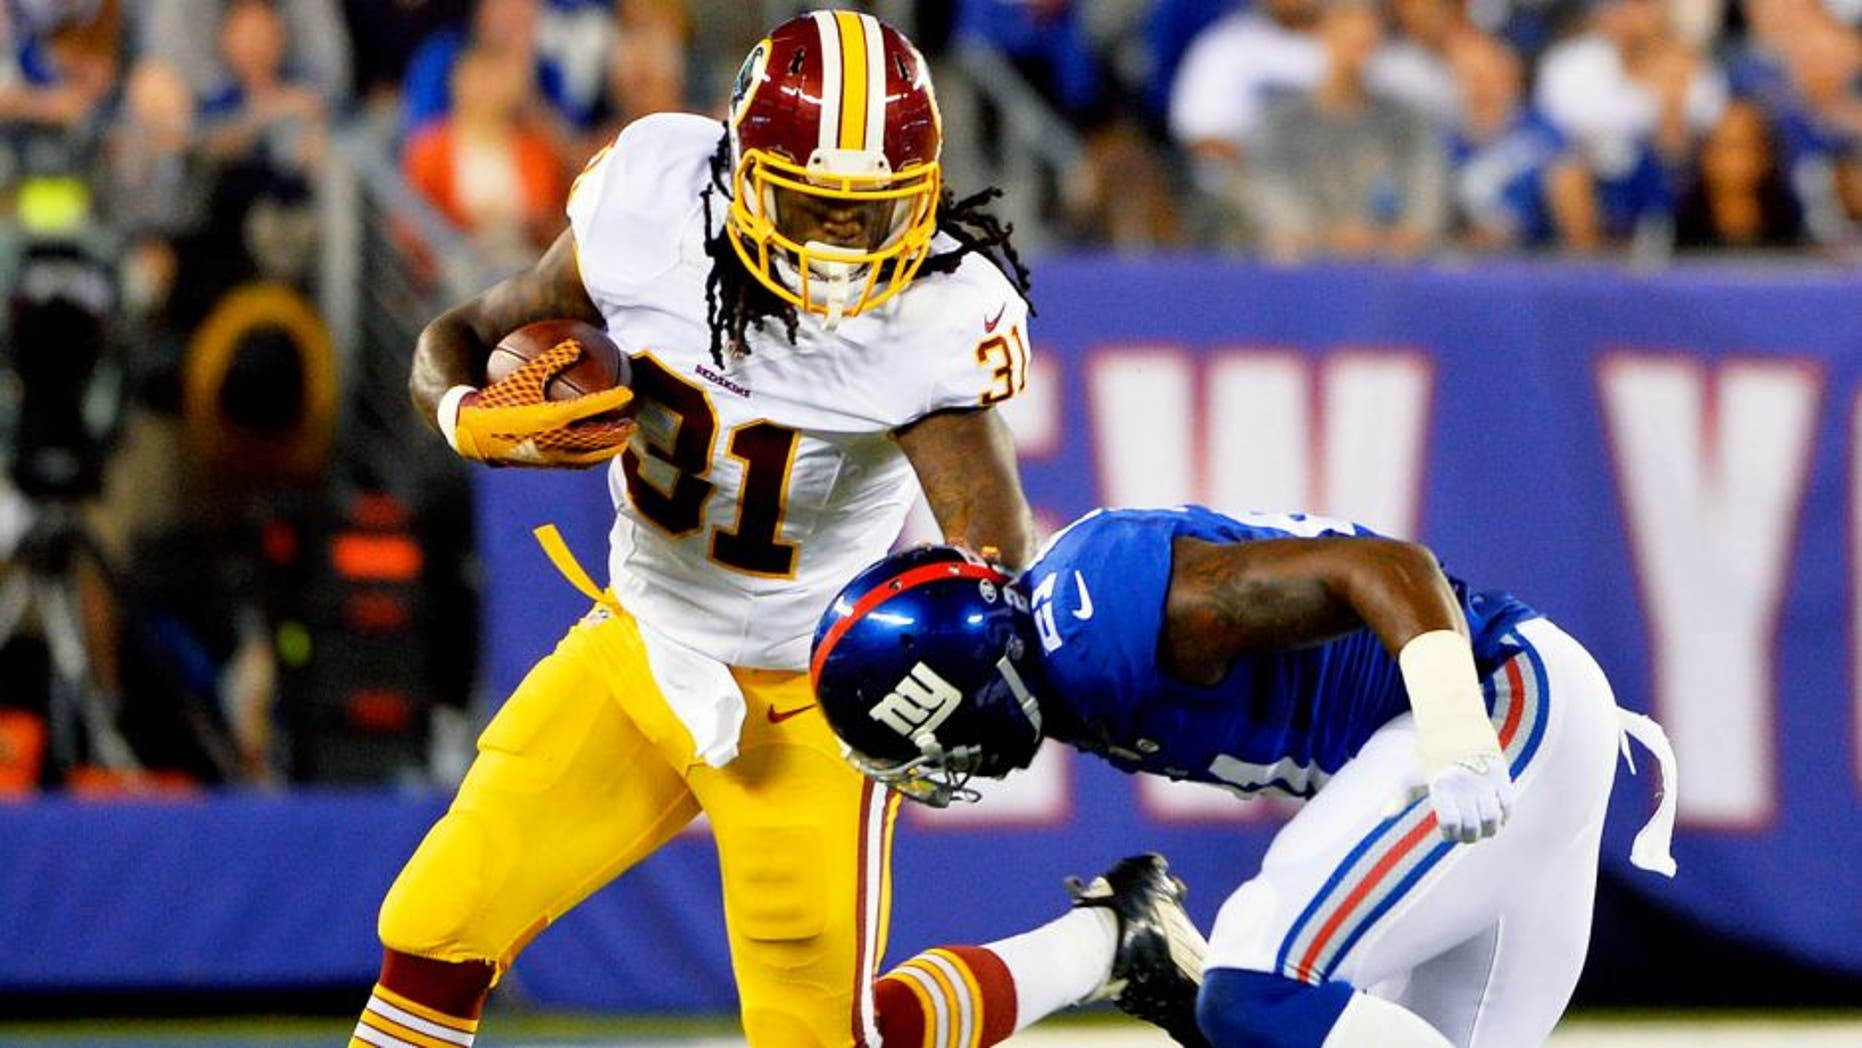 EAST RUTHERFORD, NJ - SEPTEMBER 24: Matt Jones #31 of the Washington Redskins tries to avoid the tackle of Landon Collins #21 of the New York Giants in the second quarter at MetLife Stadium on September 24, 2015 in East Rutherford, New Jersey. (Photo by Alex Goodlett/Getty Images)